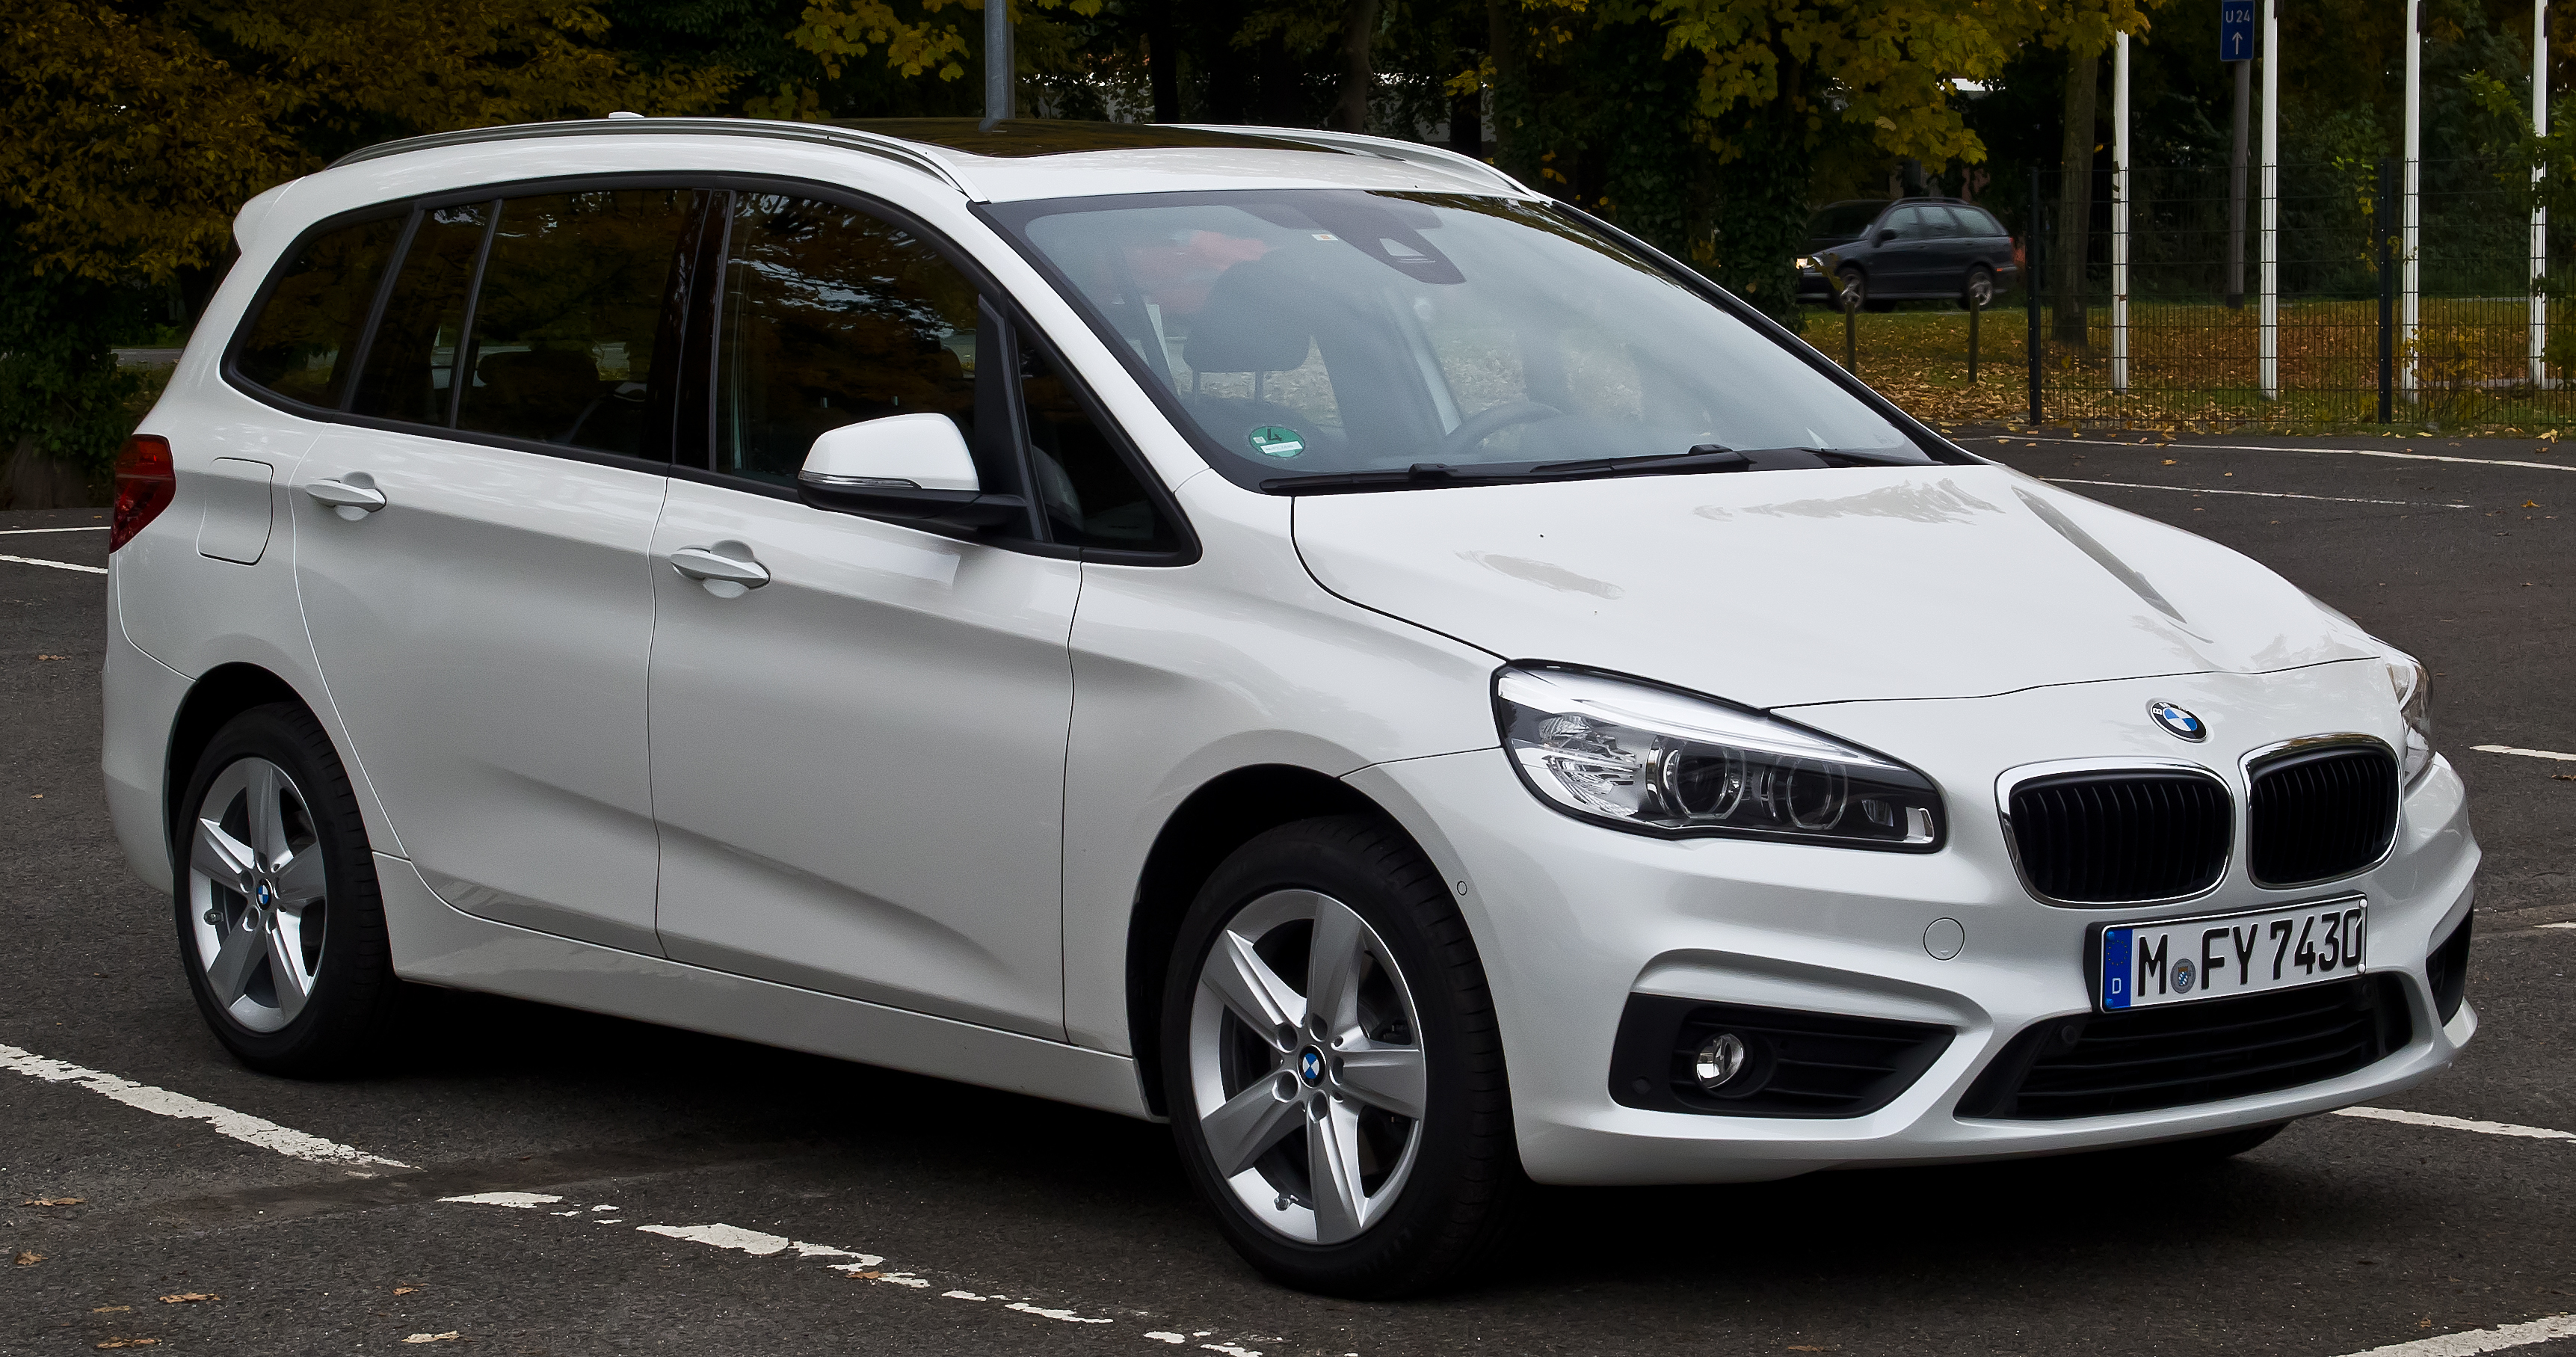 Bmw 220i gran tourer m sport package 2015 wallpapers and hd images -  Bmw 2 Series Gran Tourer Auto Express